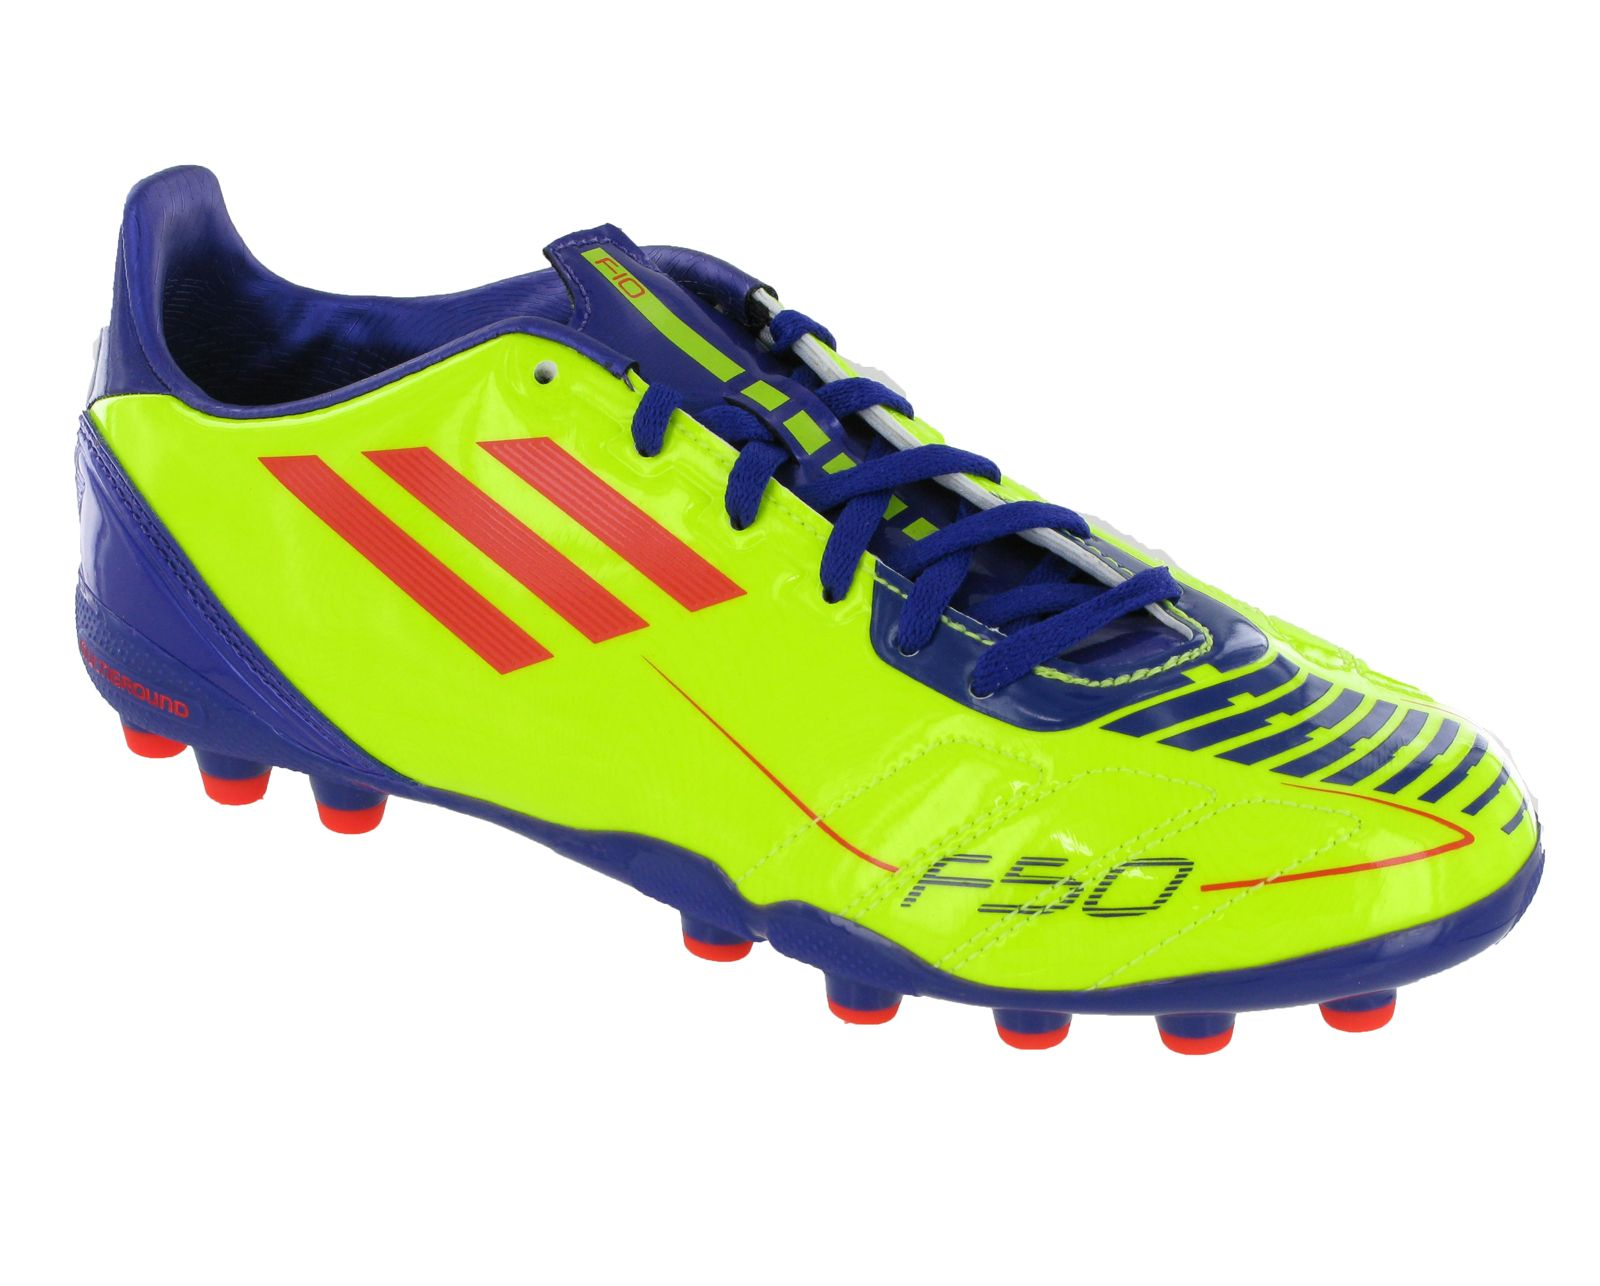 best service e38e5 20c0b New Boys Kids Adidas F10 MG J Moulded Stud Football Boots Trainers Size  10-5 UK